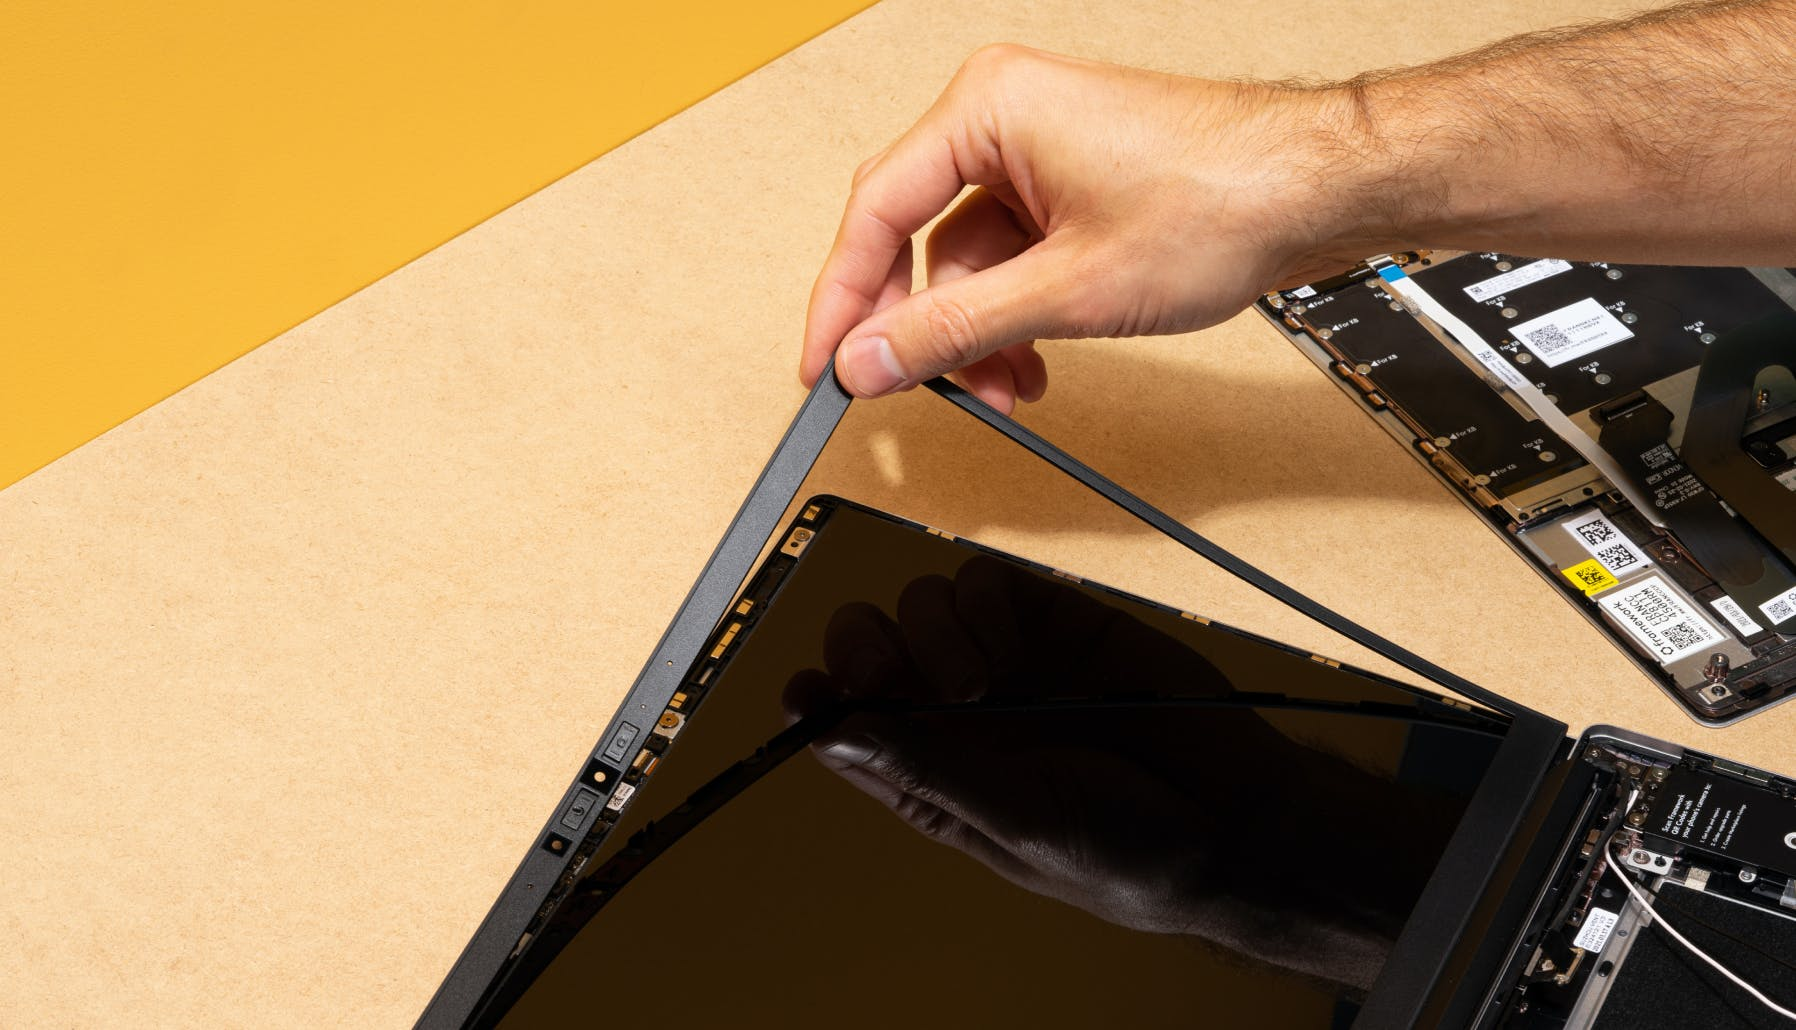 removing a black bezel from the laptop